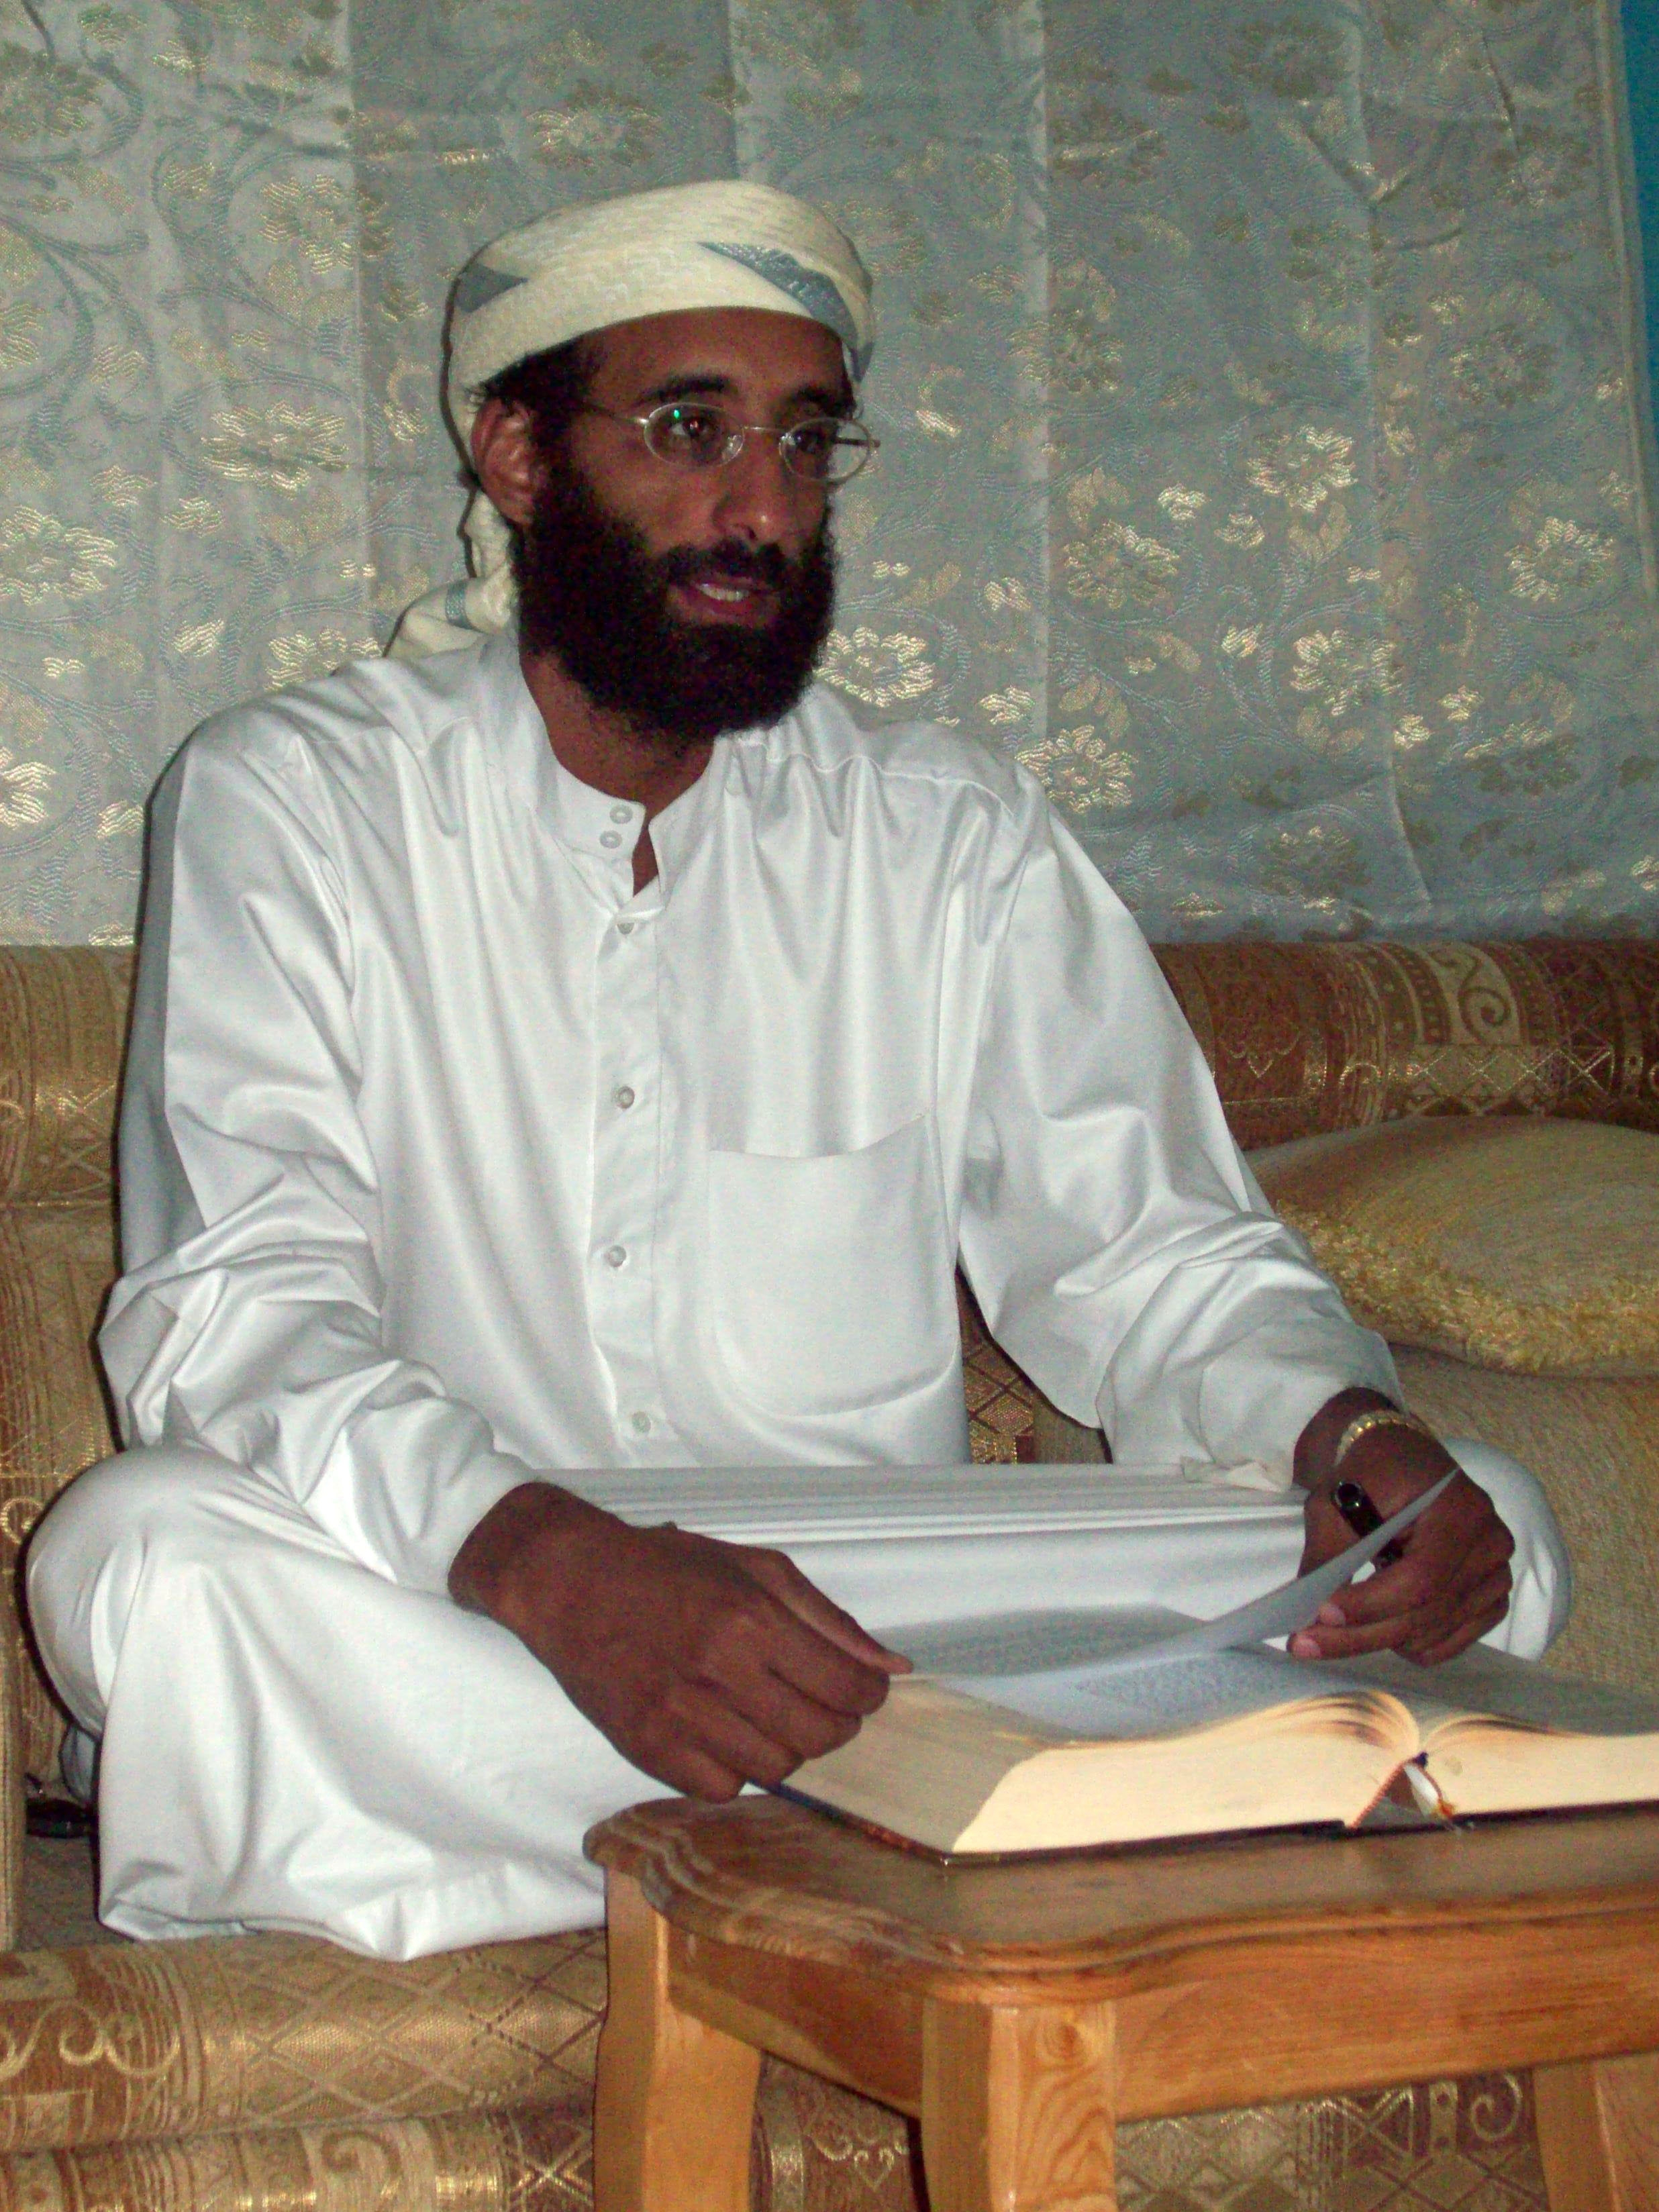 A federal appeals court on Monday released a previously secret memo that provided legal justification for using a drone to kill Imam Anwar al-Awlaki in Yemen.